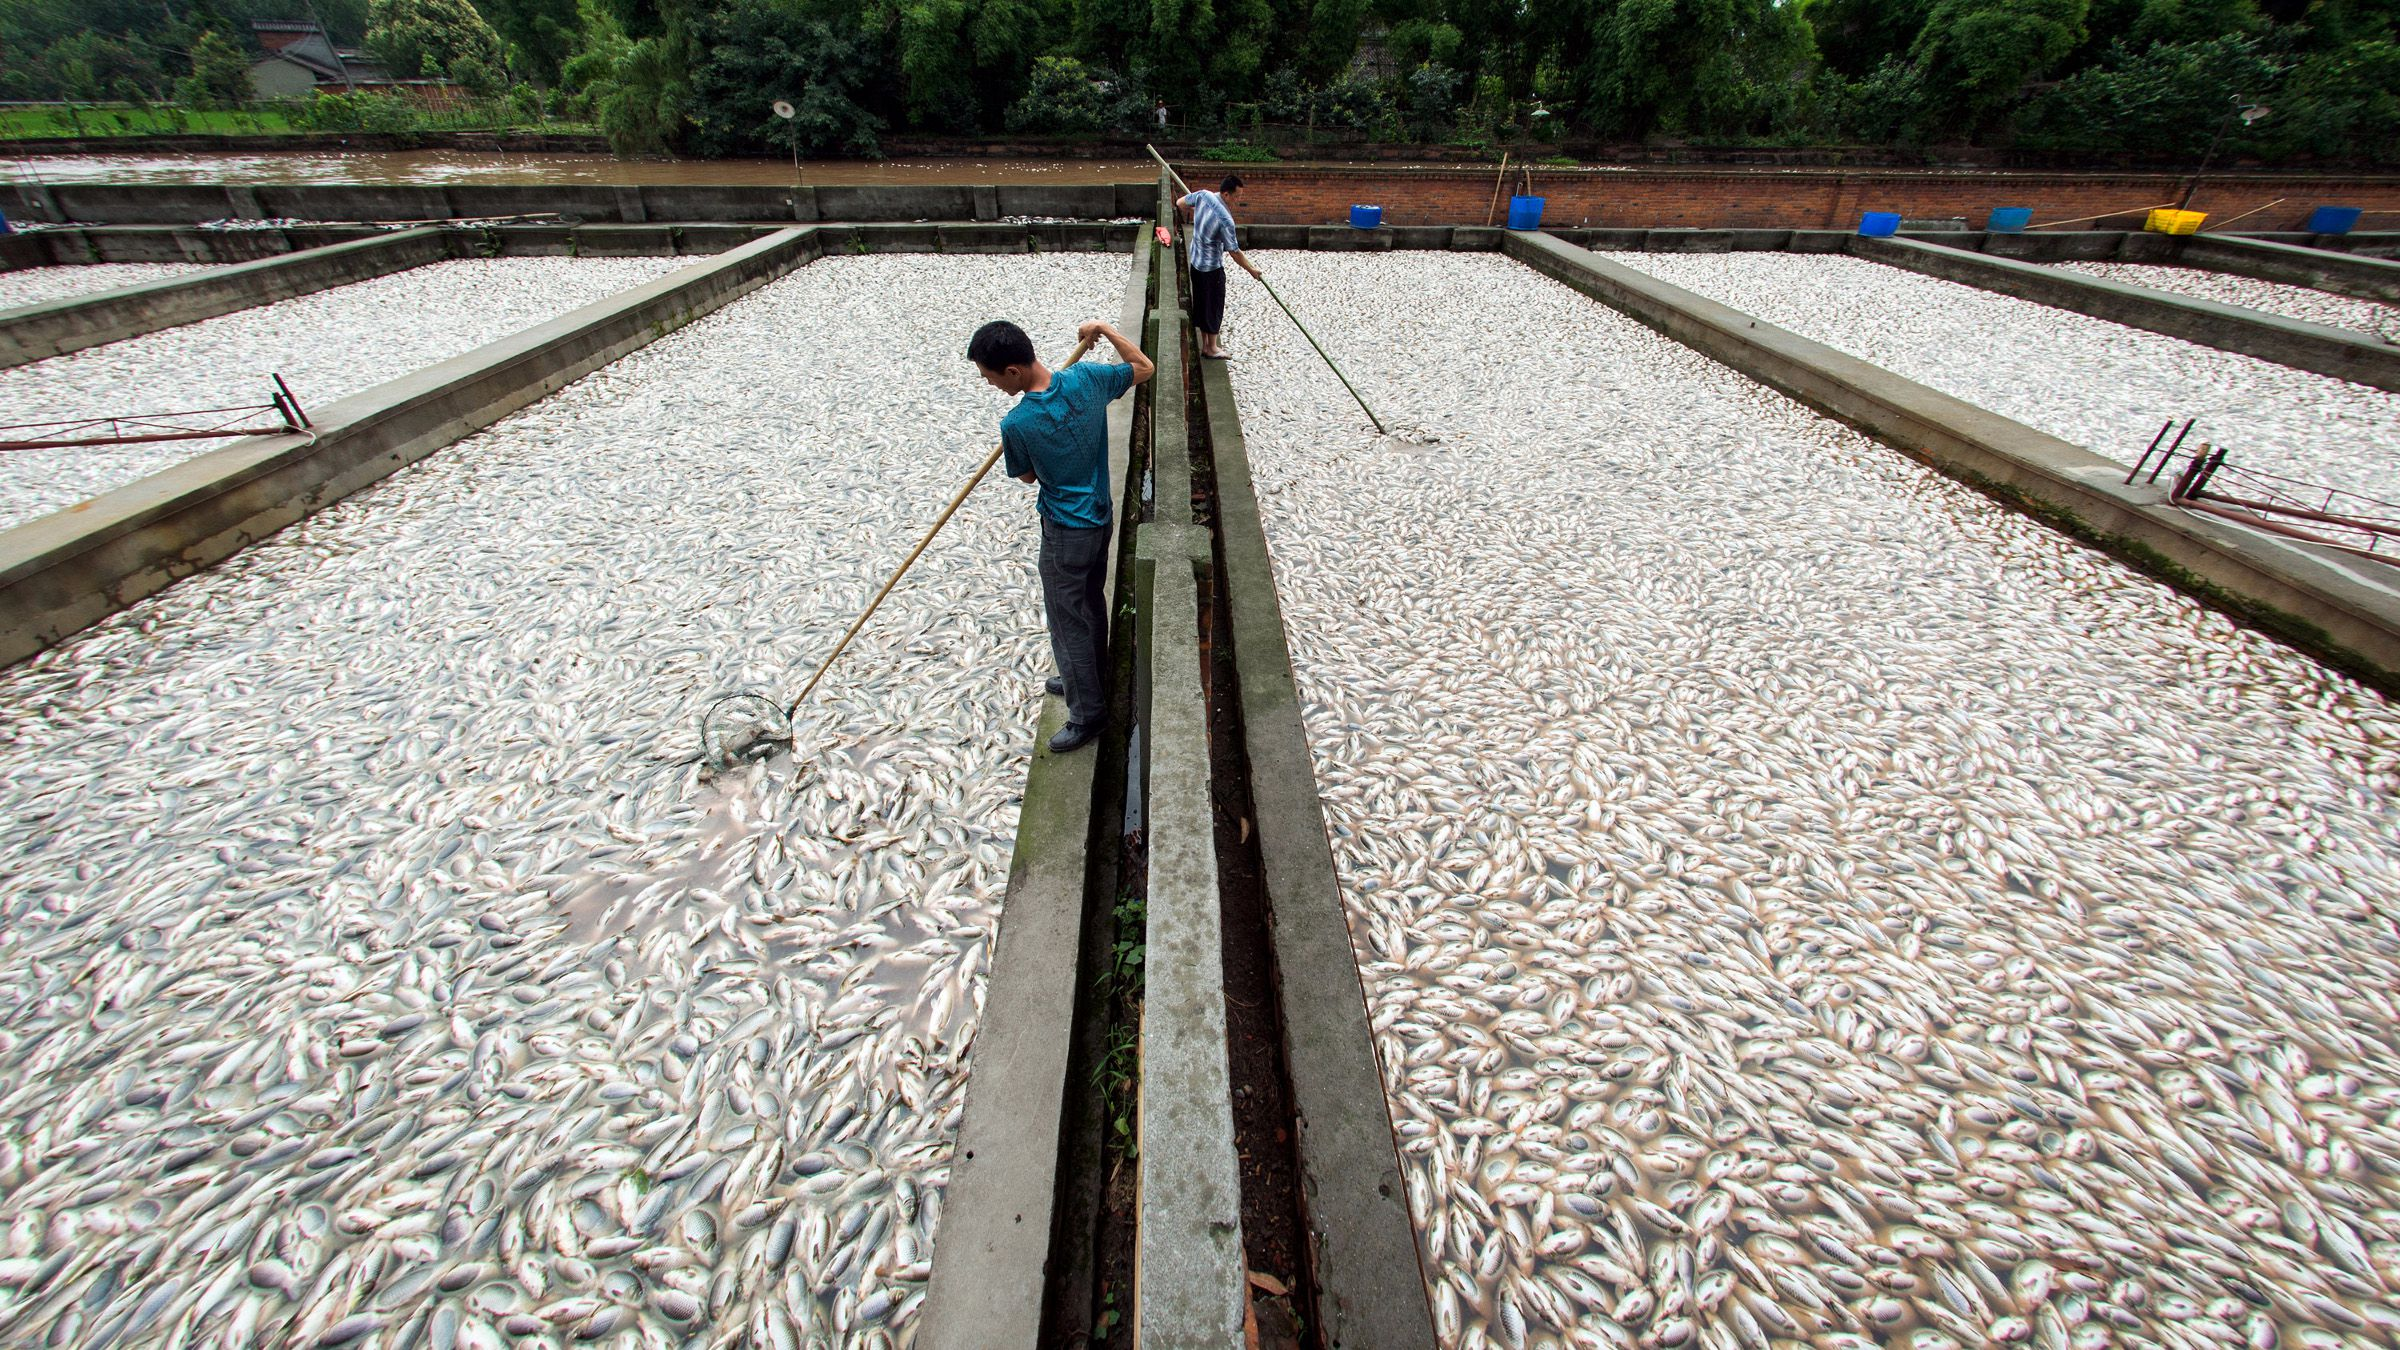 Farmers collect dead fish from their fishponds in Xinjin county of Chengdu, Sichuan province June 9, 2013. More than 400 tonnes of fish were found dead on Saturday morning in 55 fishponds in Xinjin. Local environmental protection administration said no industrial pollution was found, and the fish were killed by insufficient of oxygen in the river, local media reported. Picture taken June 9, 2013.